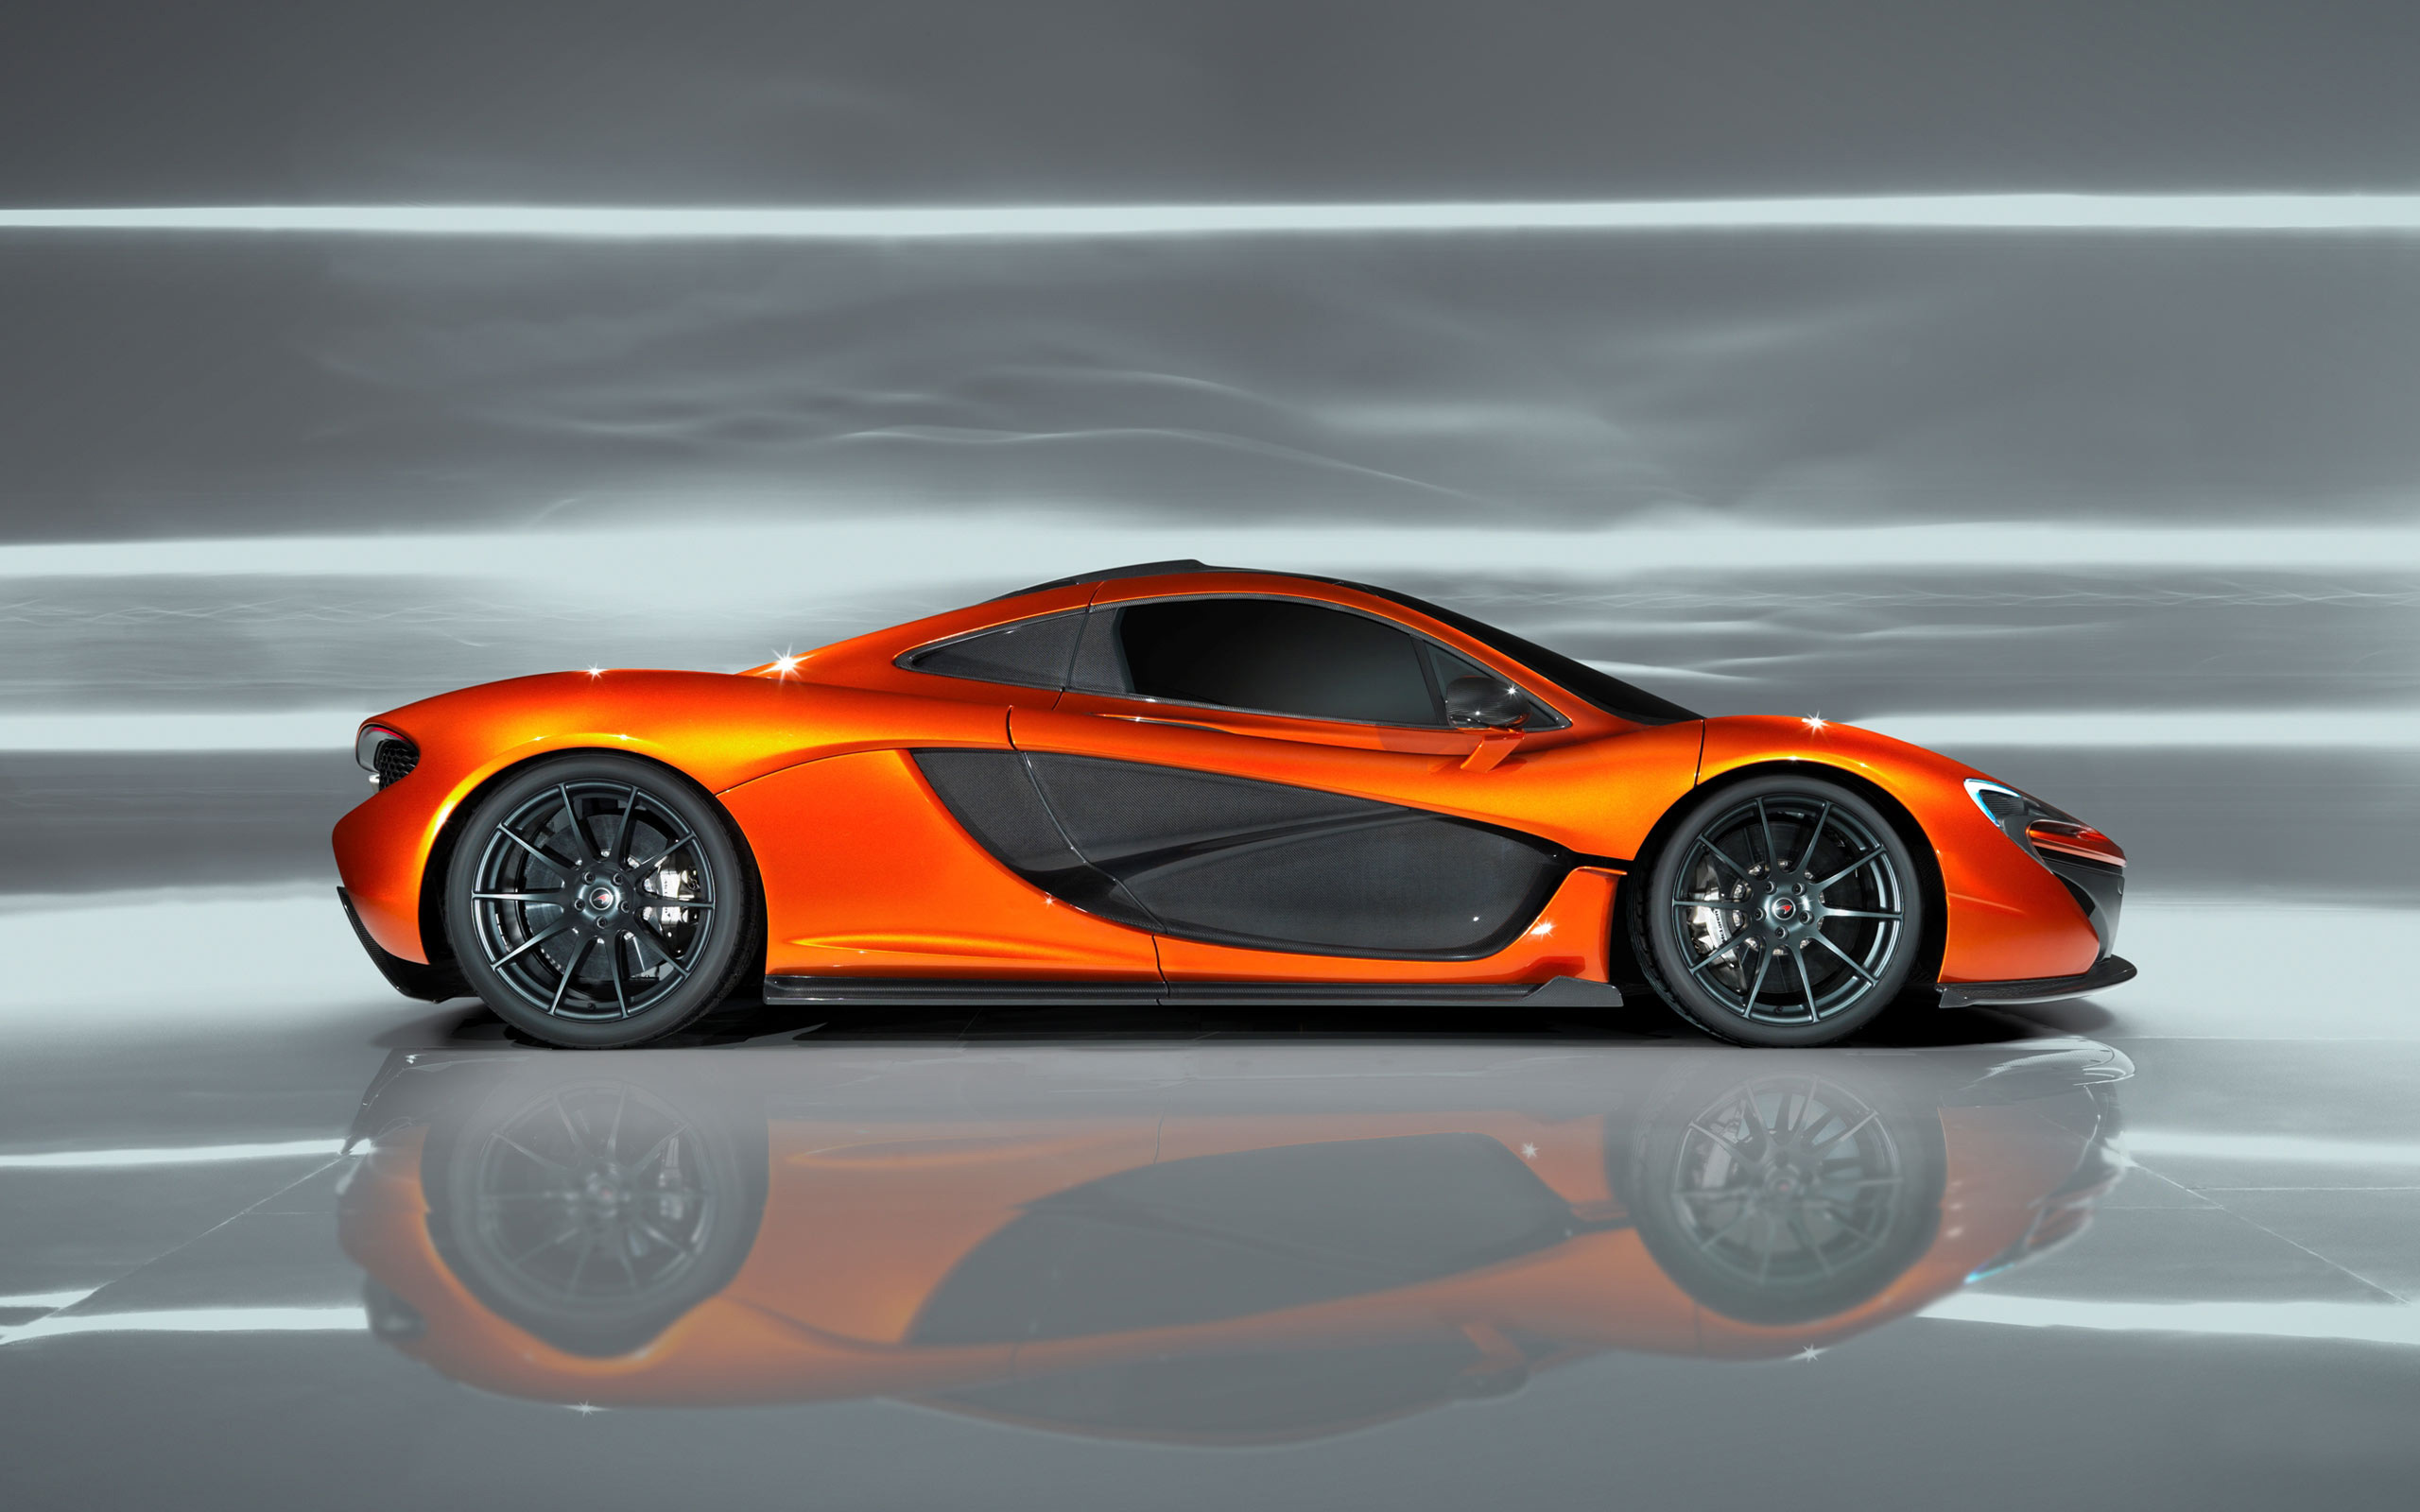 2012 mclaren p1 concept 2 wallpaper hd car wallpapers id 3047. Black Bedroom Furniture Sets. Home Design Ideas